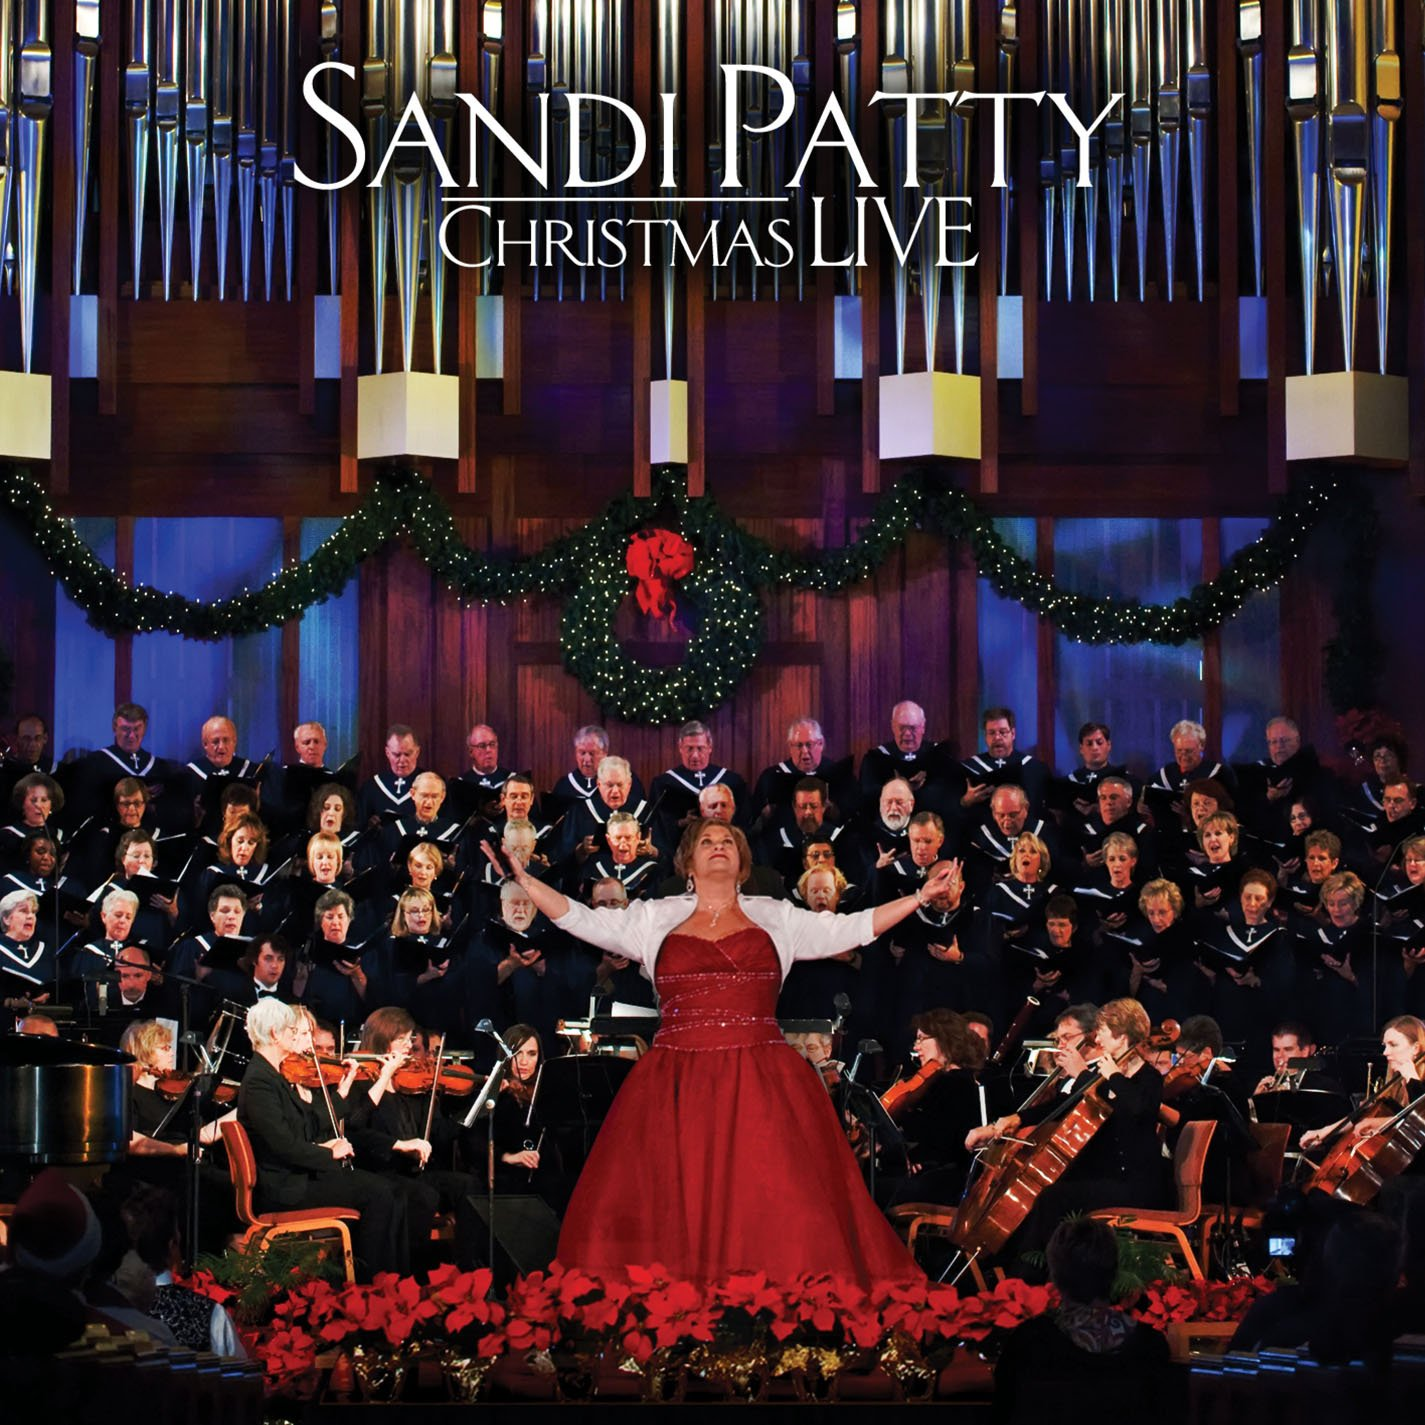 Sandi Patty - Sandi Patty Christmas Live (CD/DVD) - Amazon.com Music